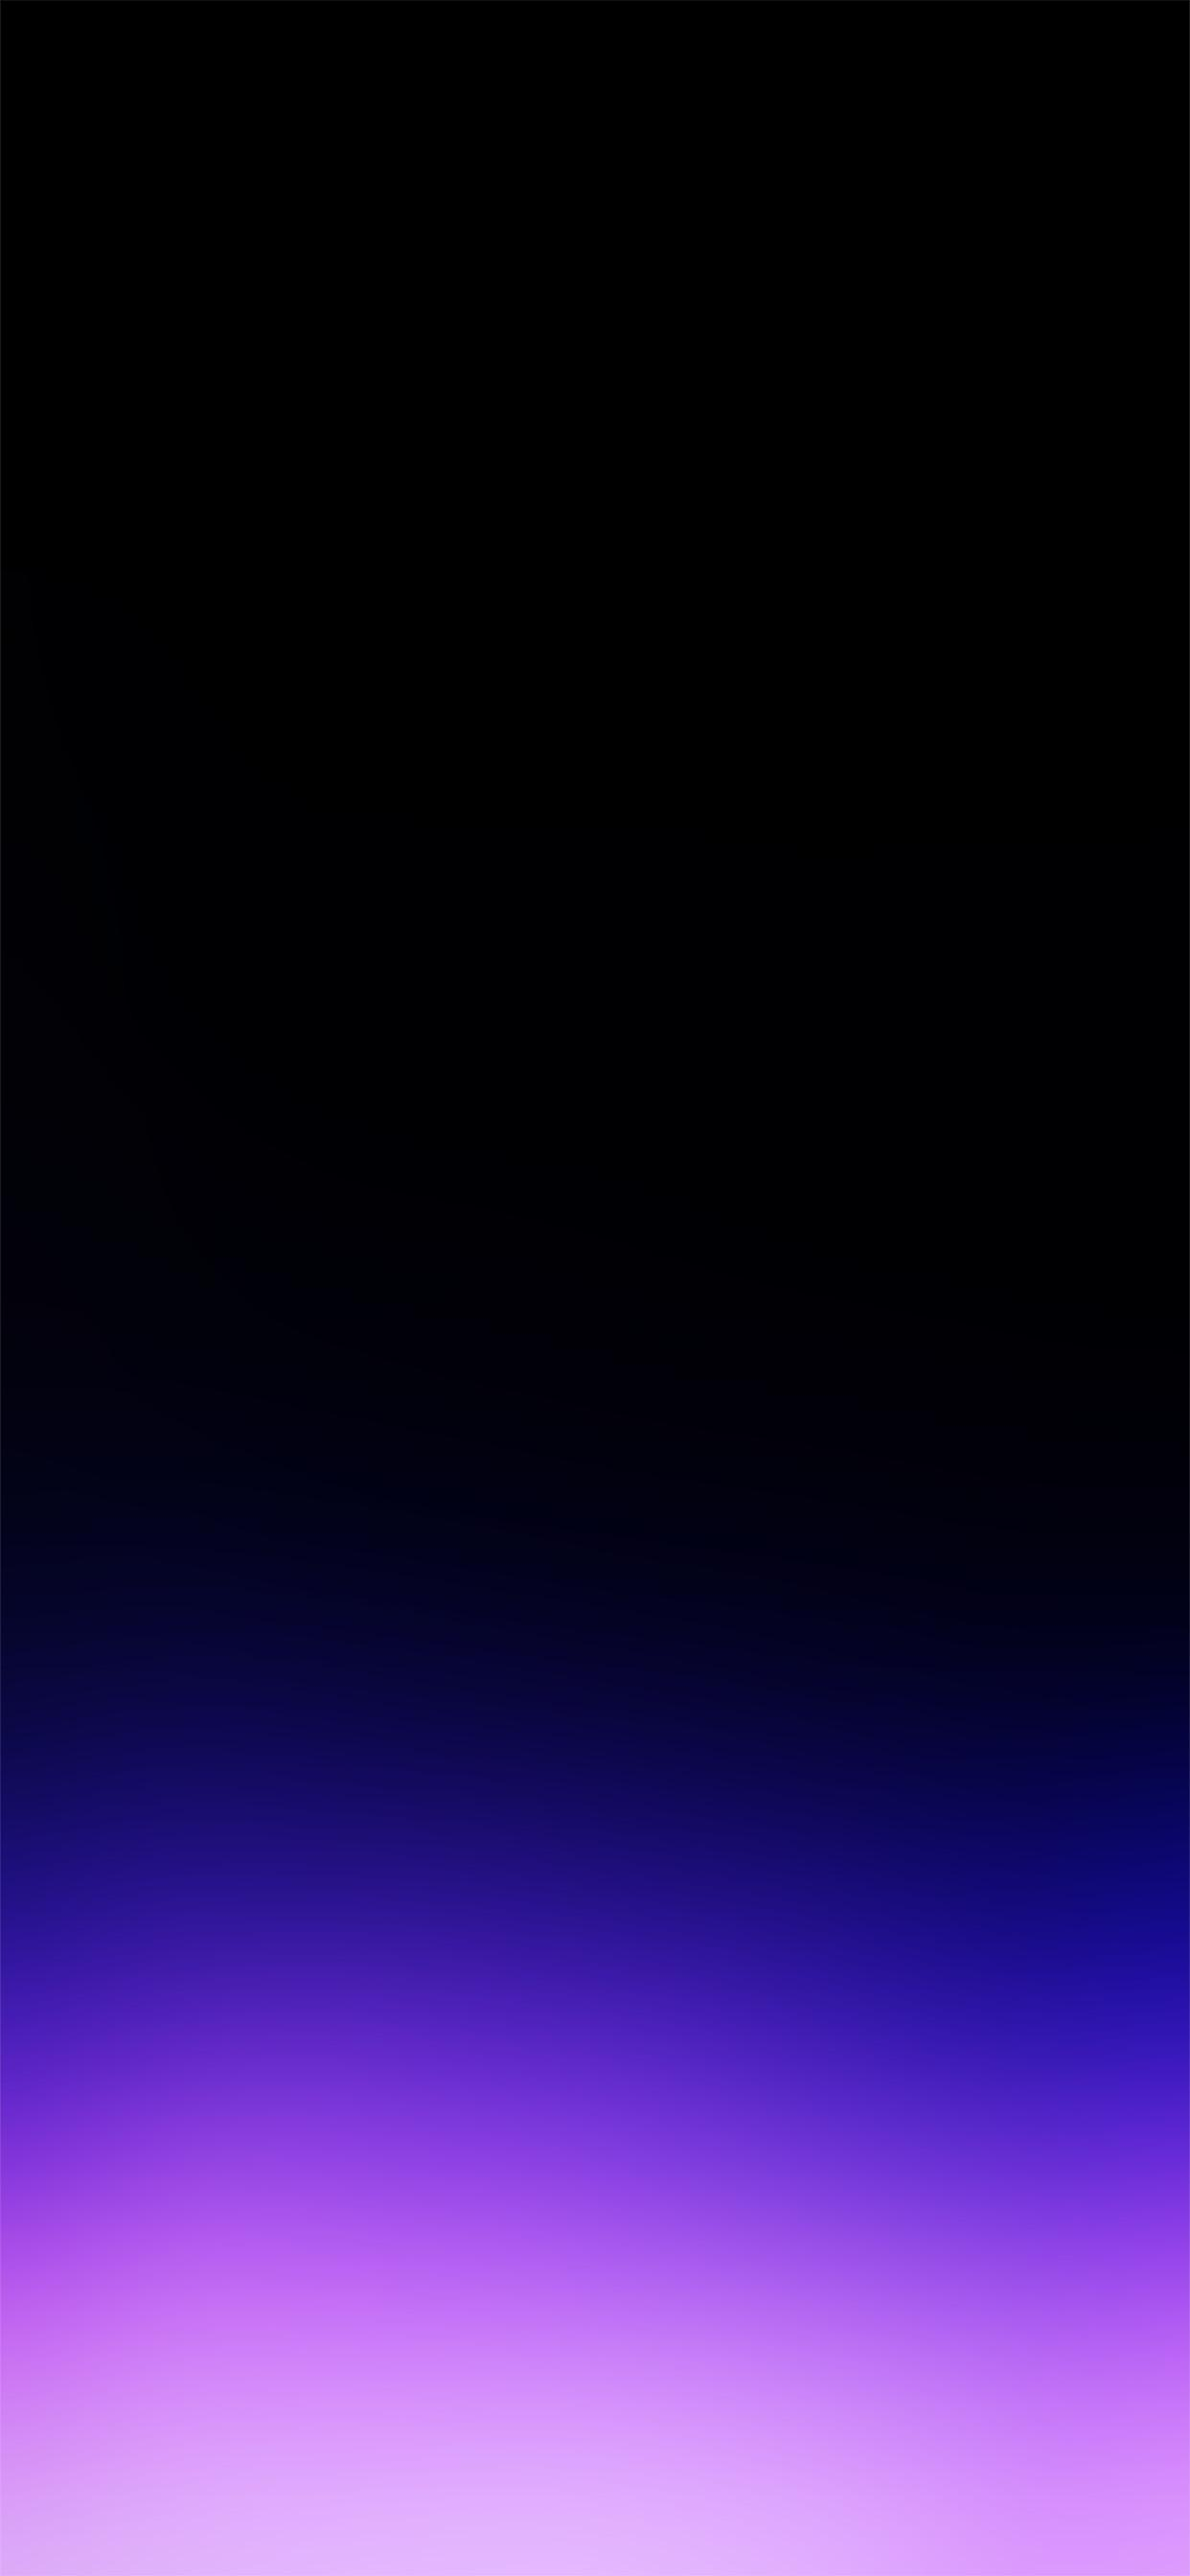 Dark Iphone Wallpapers Wallpaper Cave